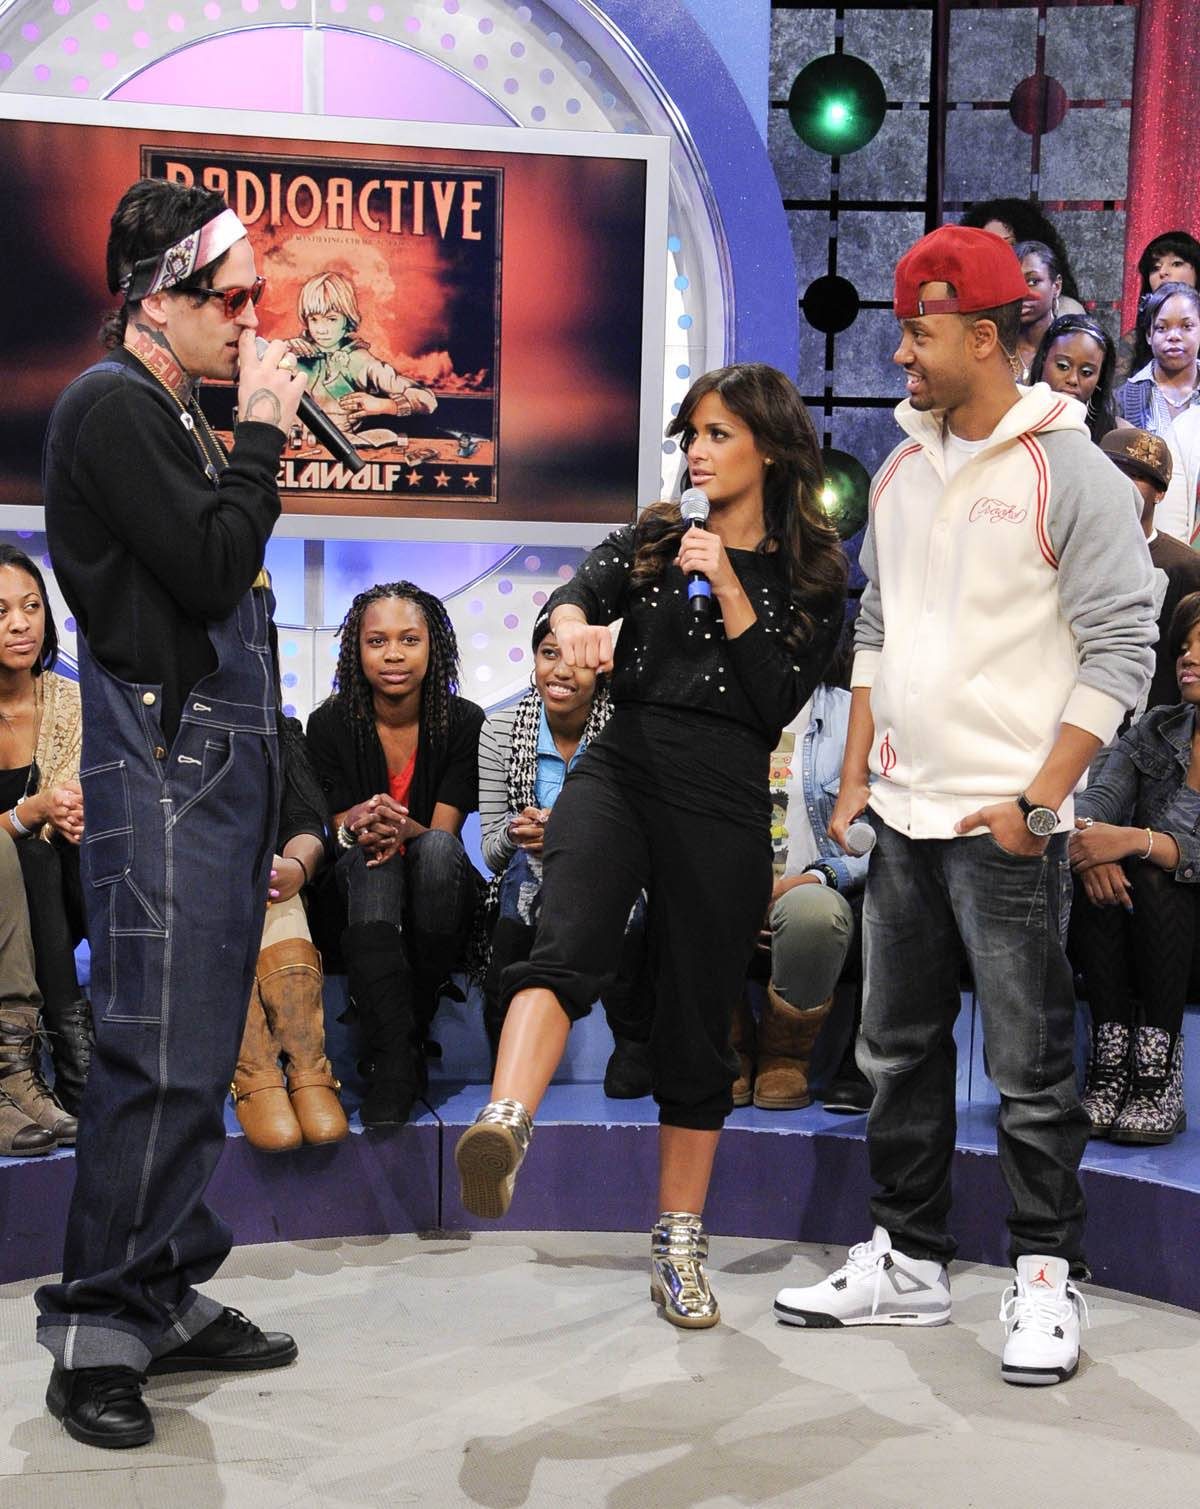 Is This It? - Rocsi Diaz asks if she is accurately representing the riding position for Yelawolf's motorcycle at 106 & Park, January 27, 2012. (Photo: John Ricard / BET)